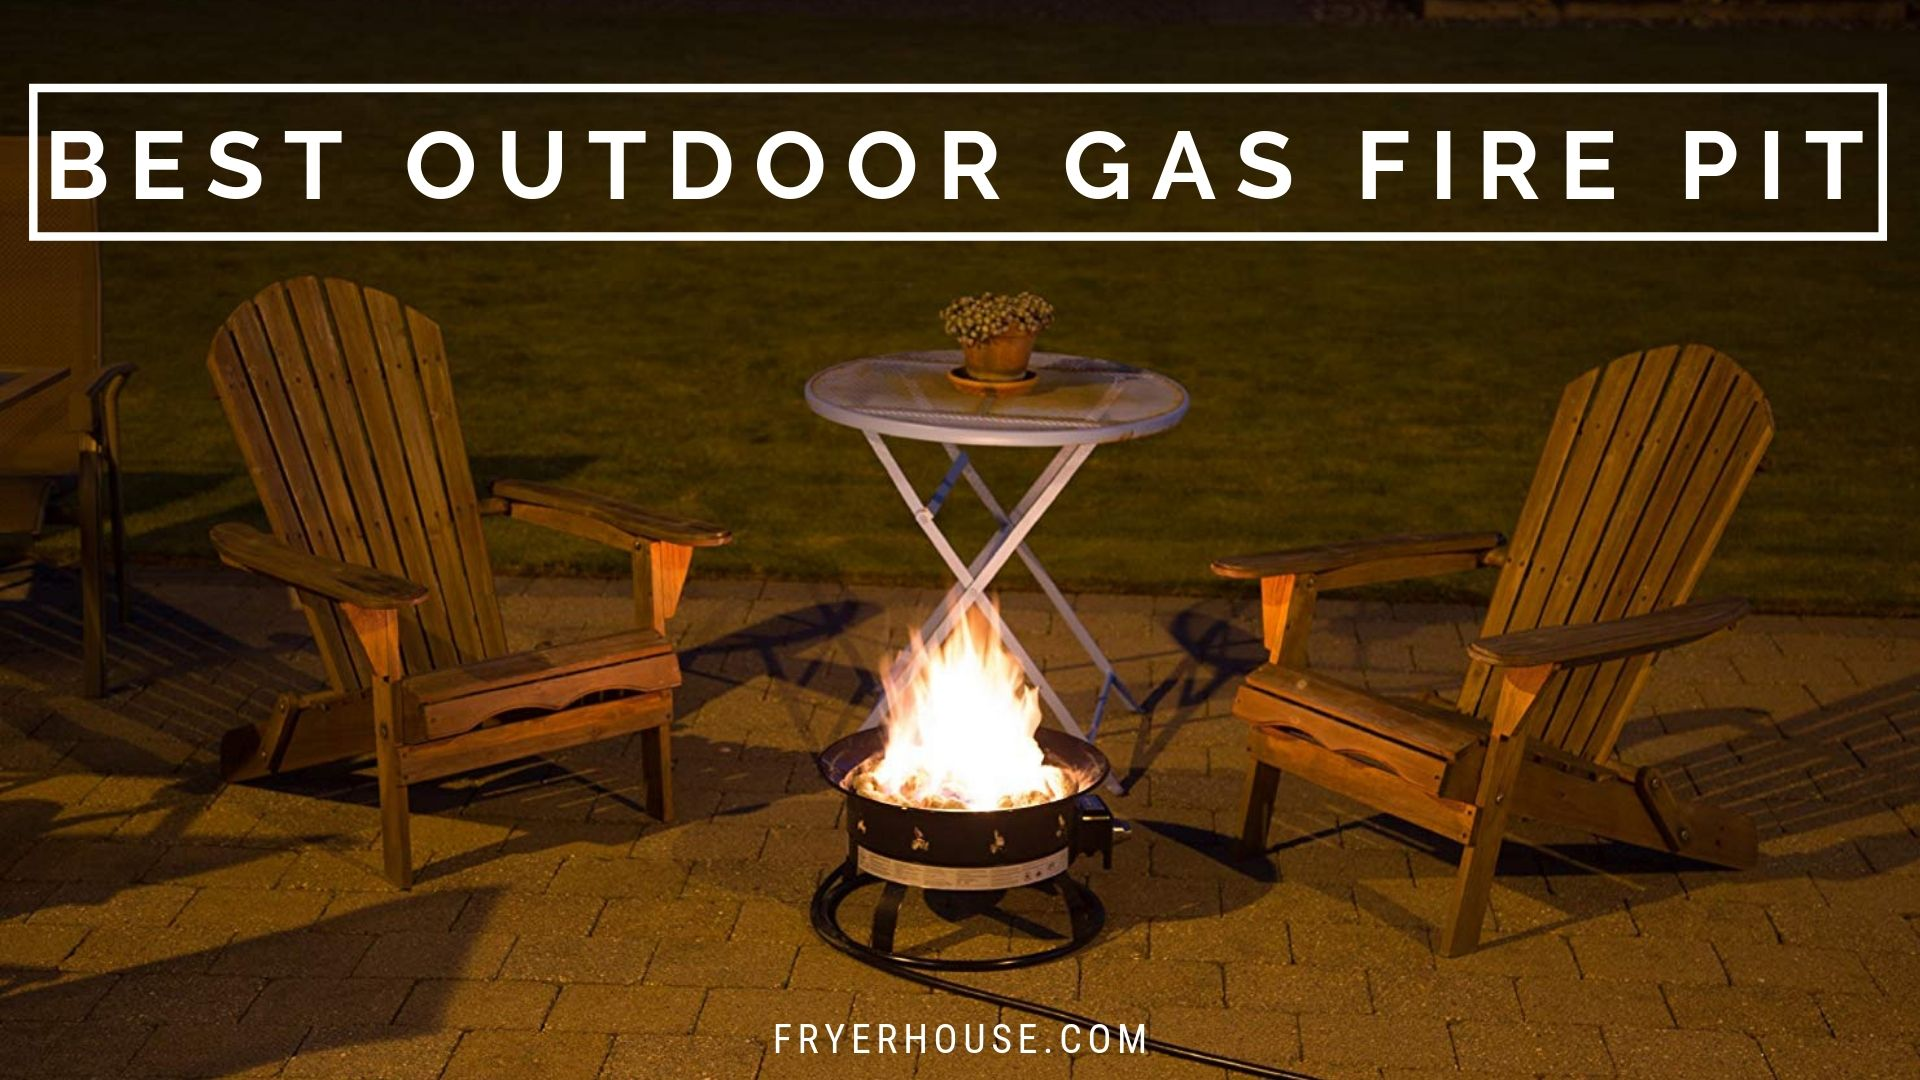 10 Best Outdoor Gas Fire Pit You Should Buy In 2019